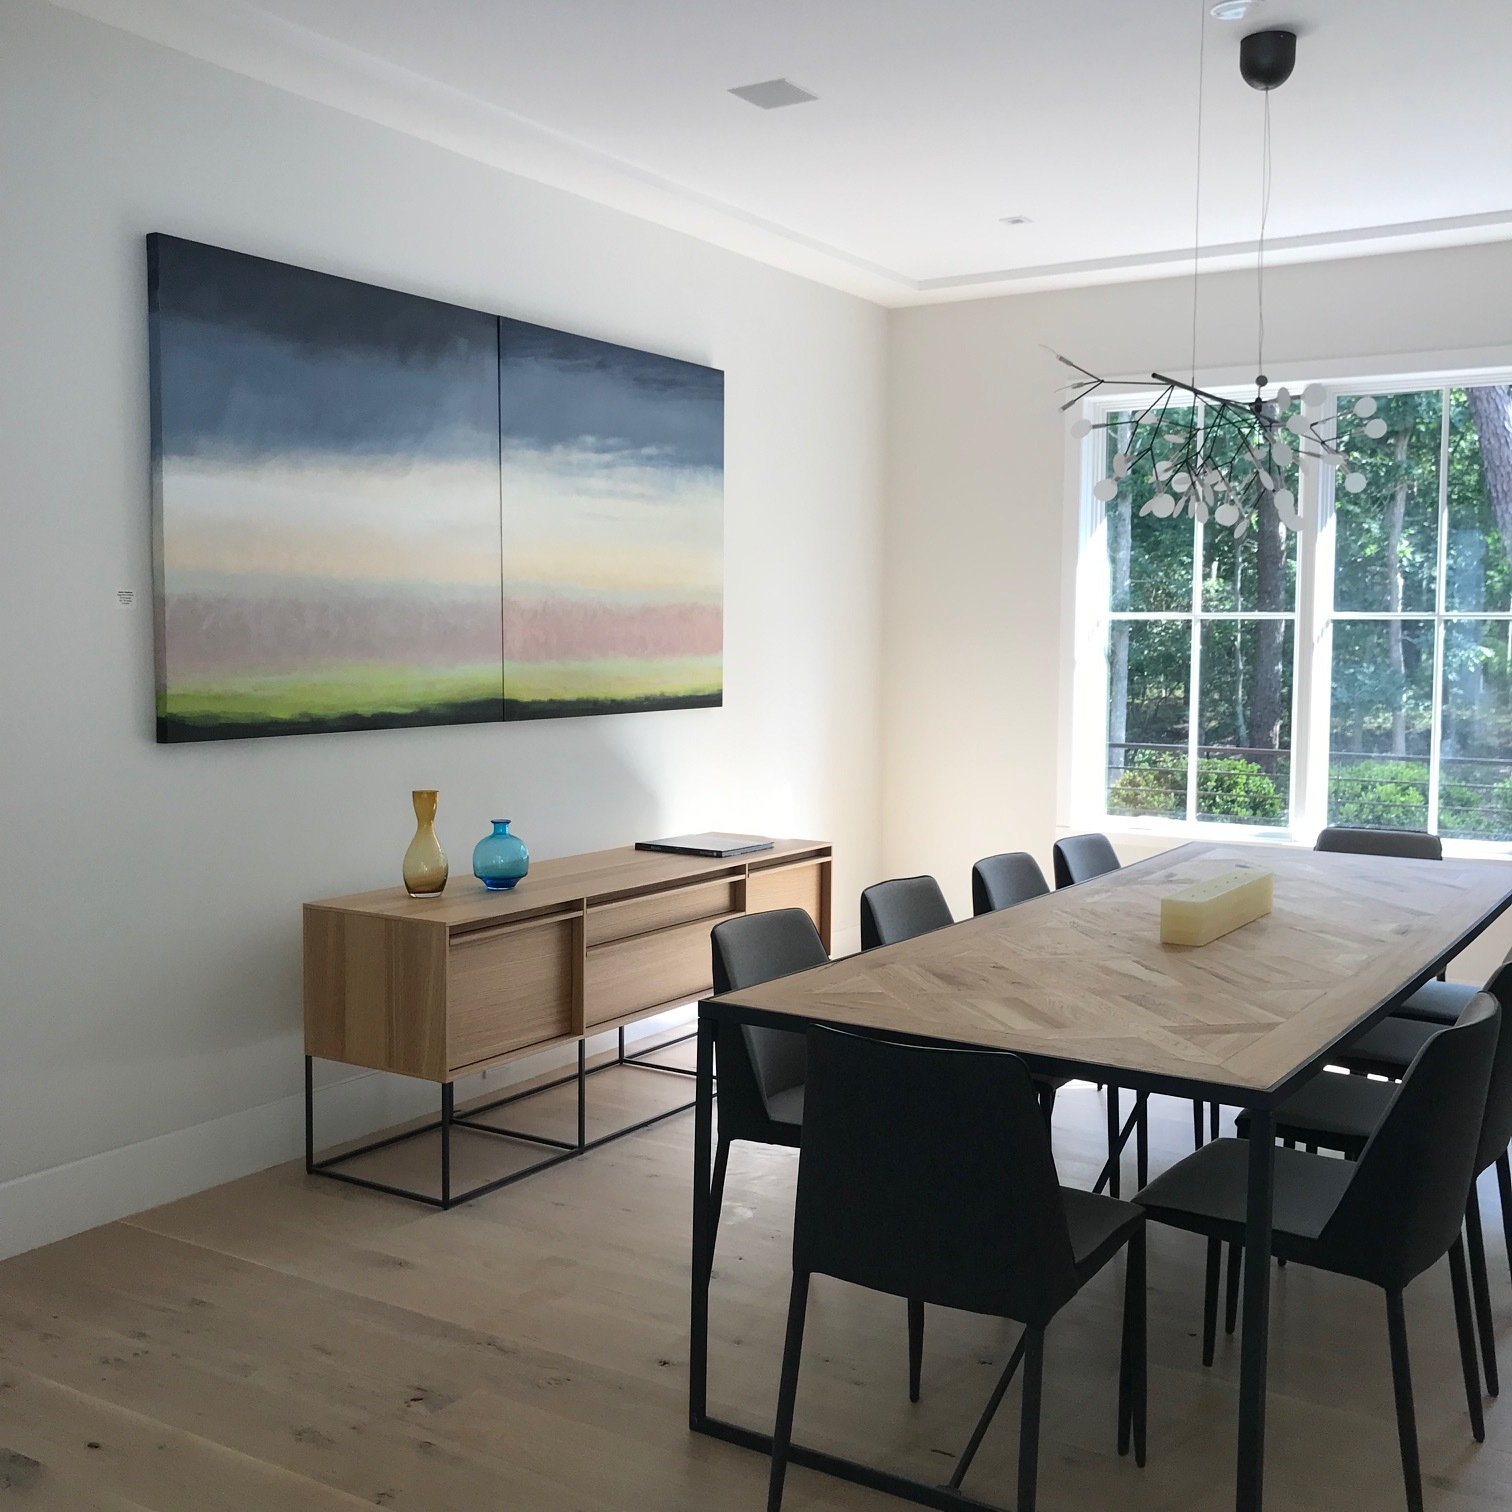 Learn about STAGING a new home with artwork  > >